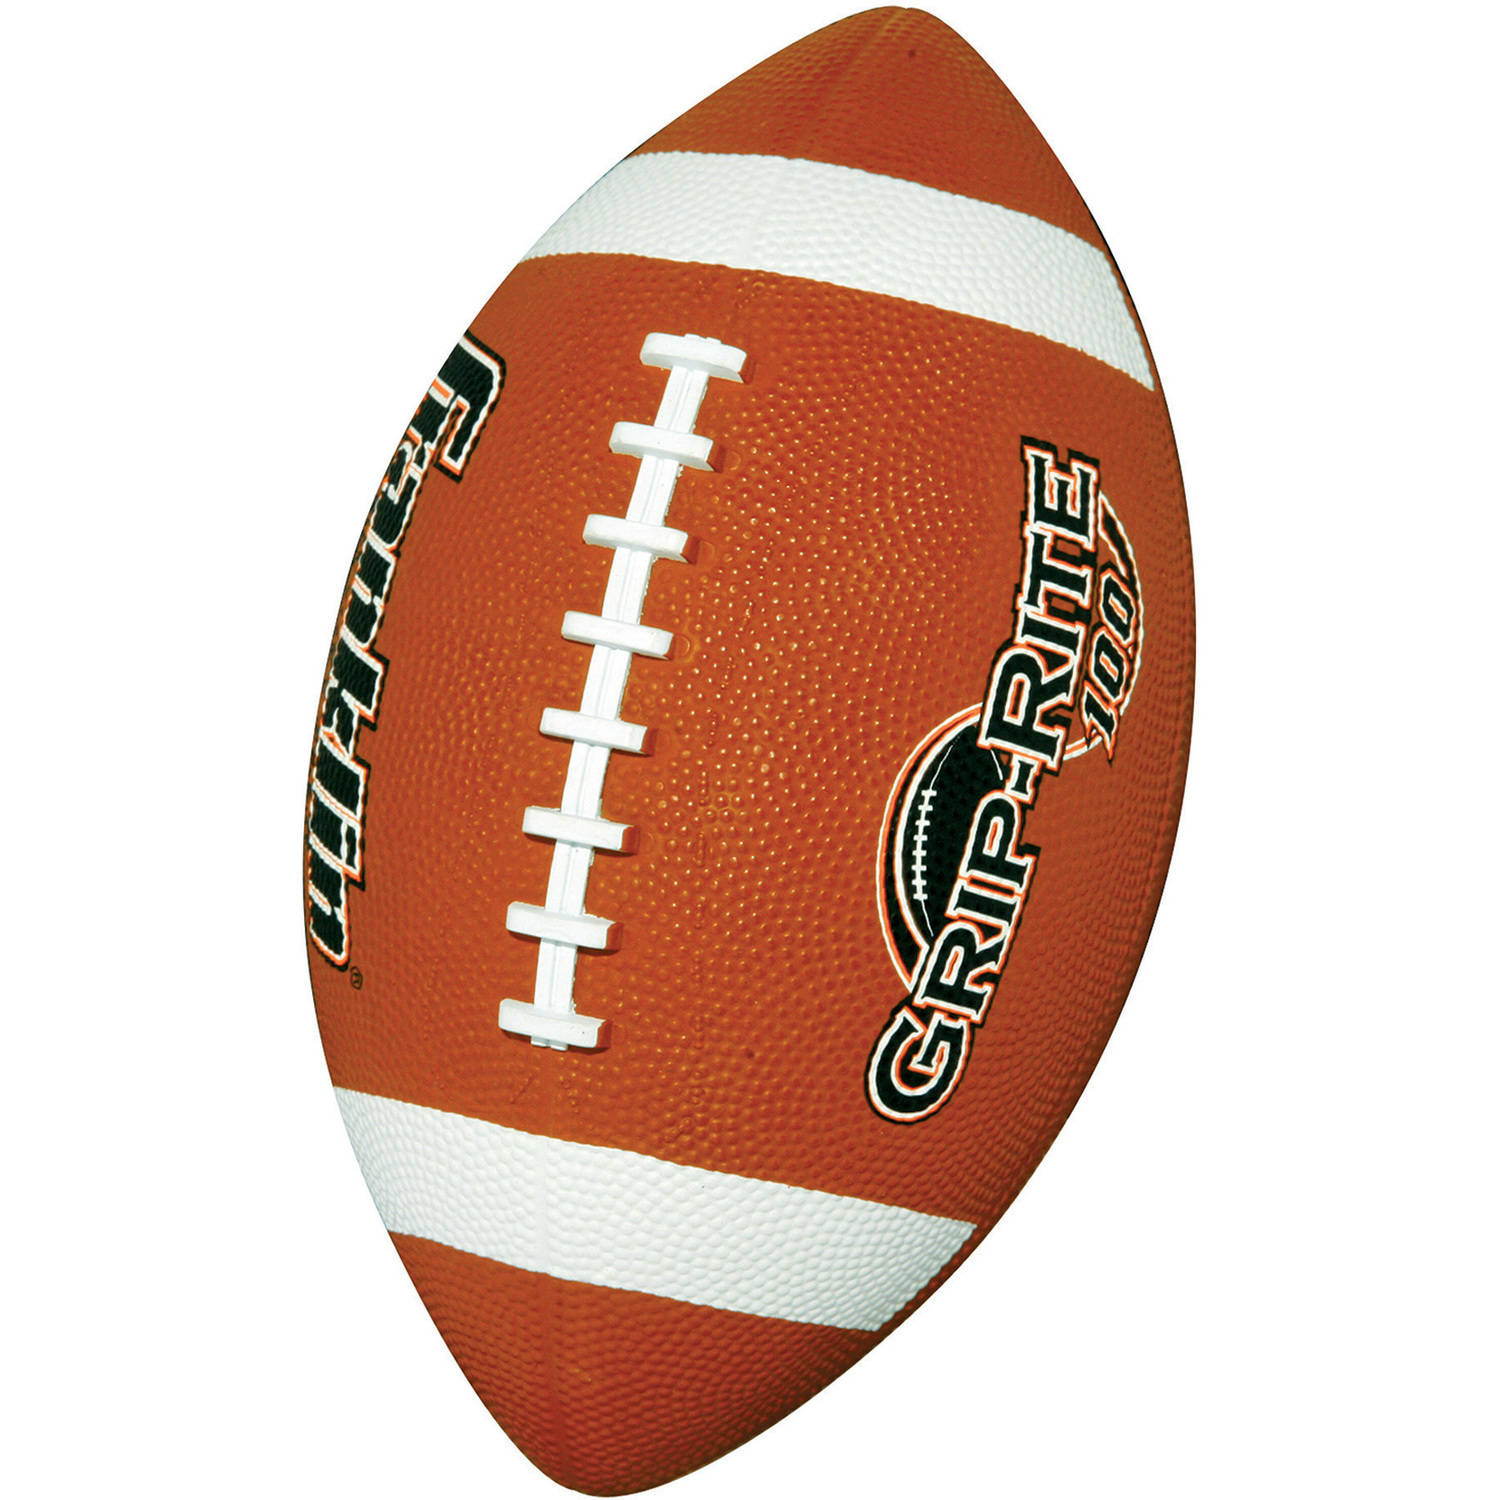 Franklin Sports Grip-Rite 100 Rubber Football, Junior